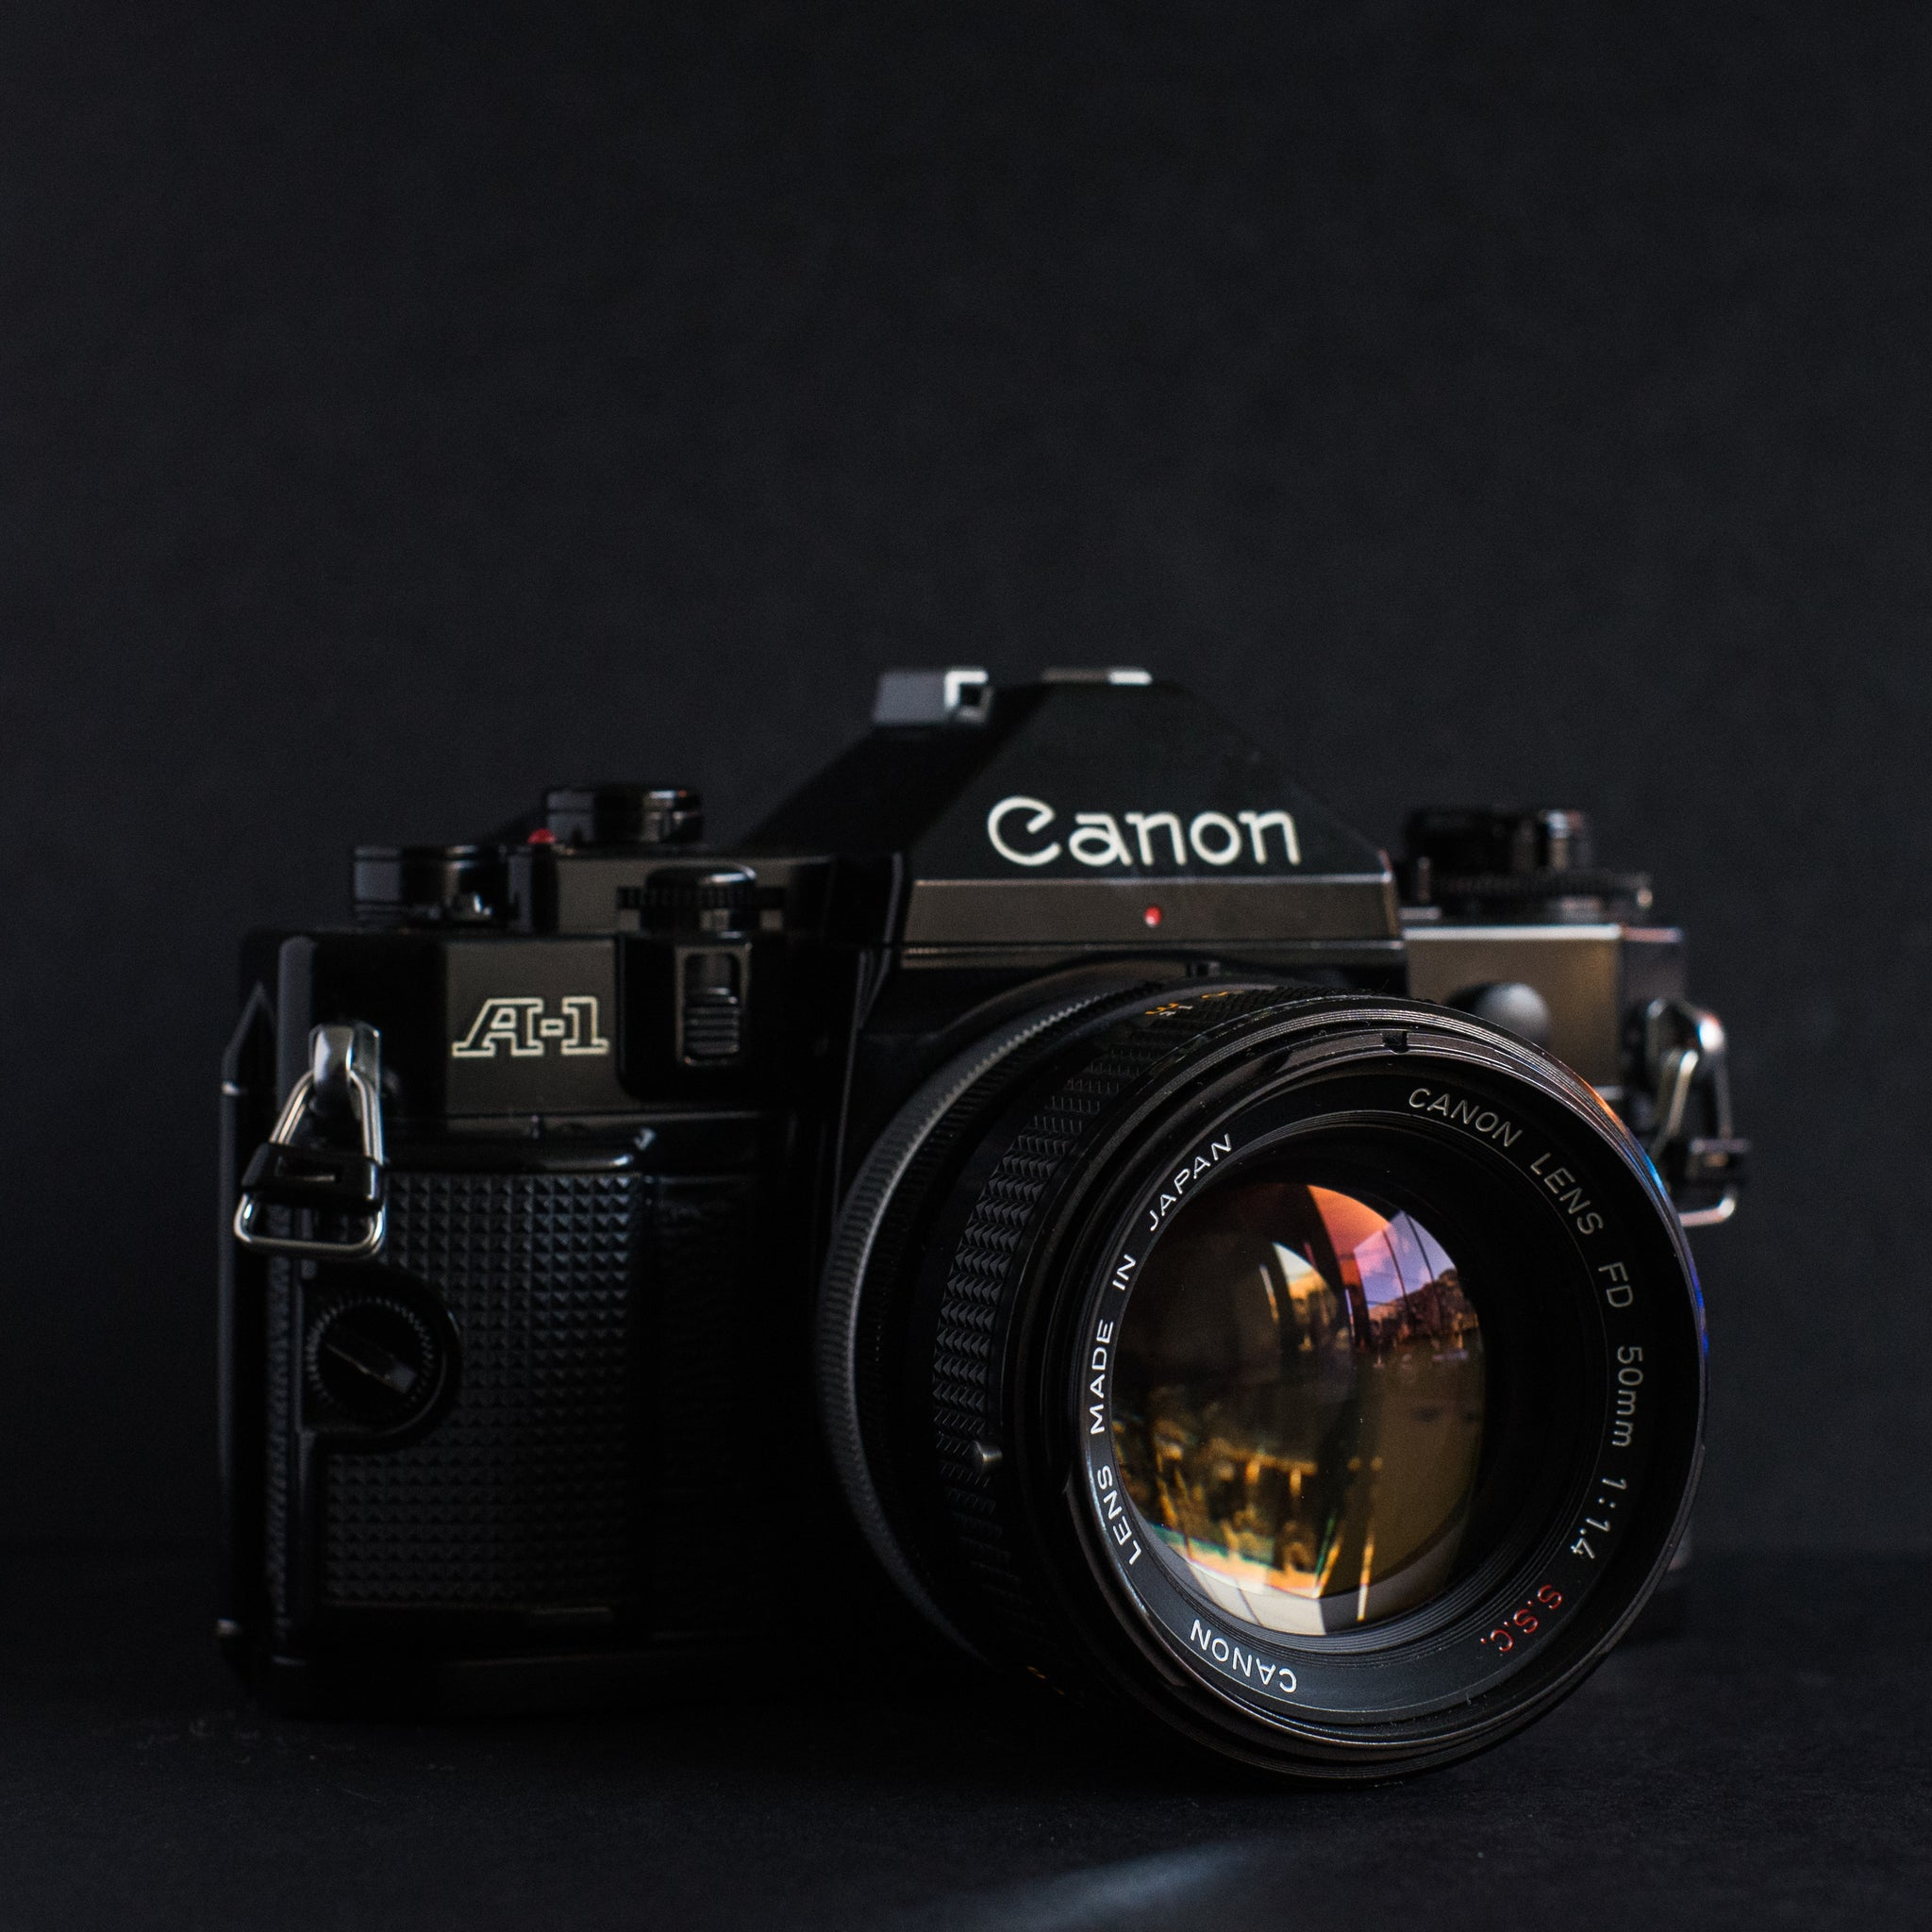 Canon A-1 with Canon 50mm f1.4 SSC